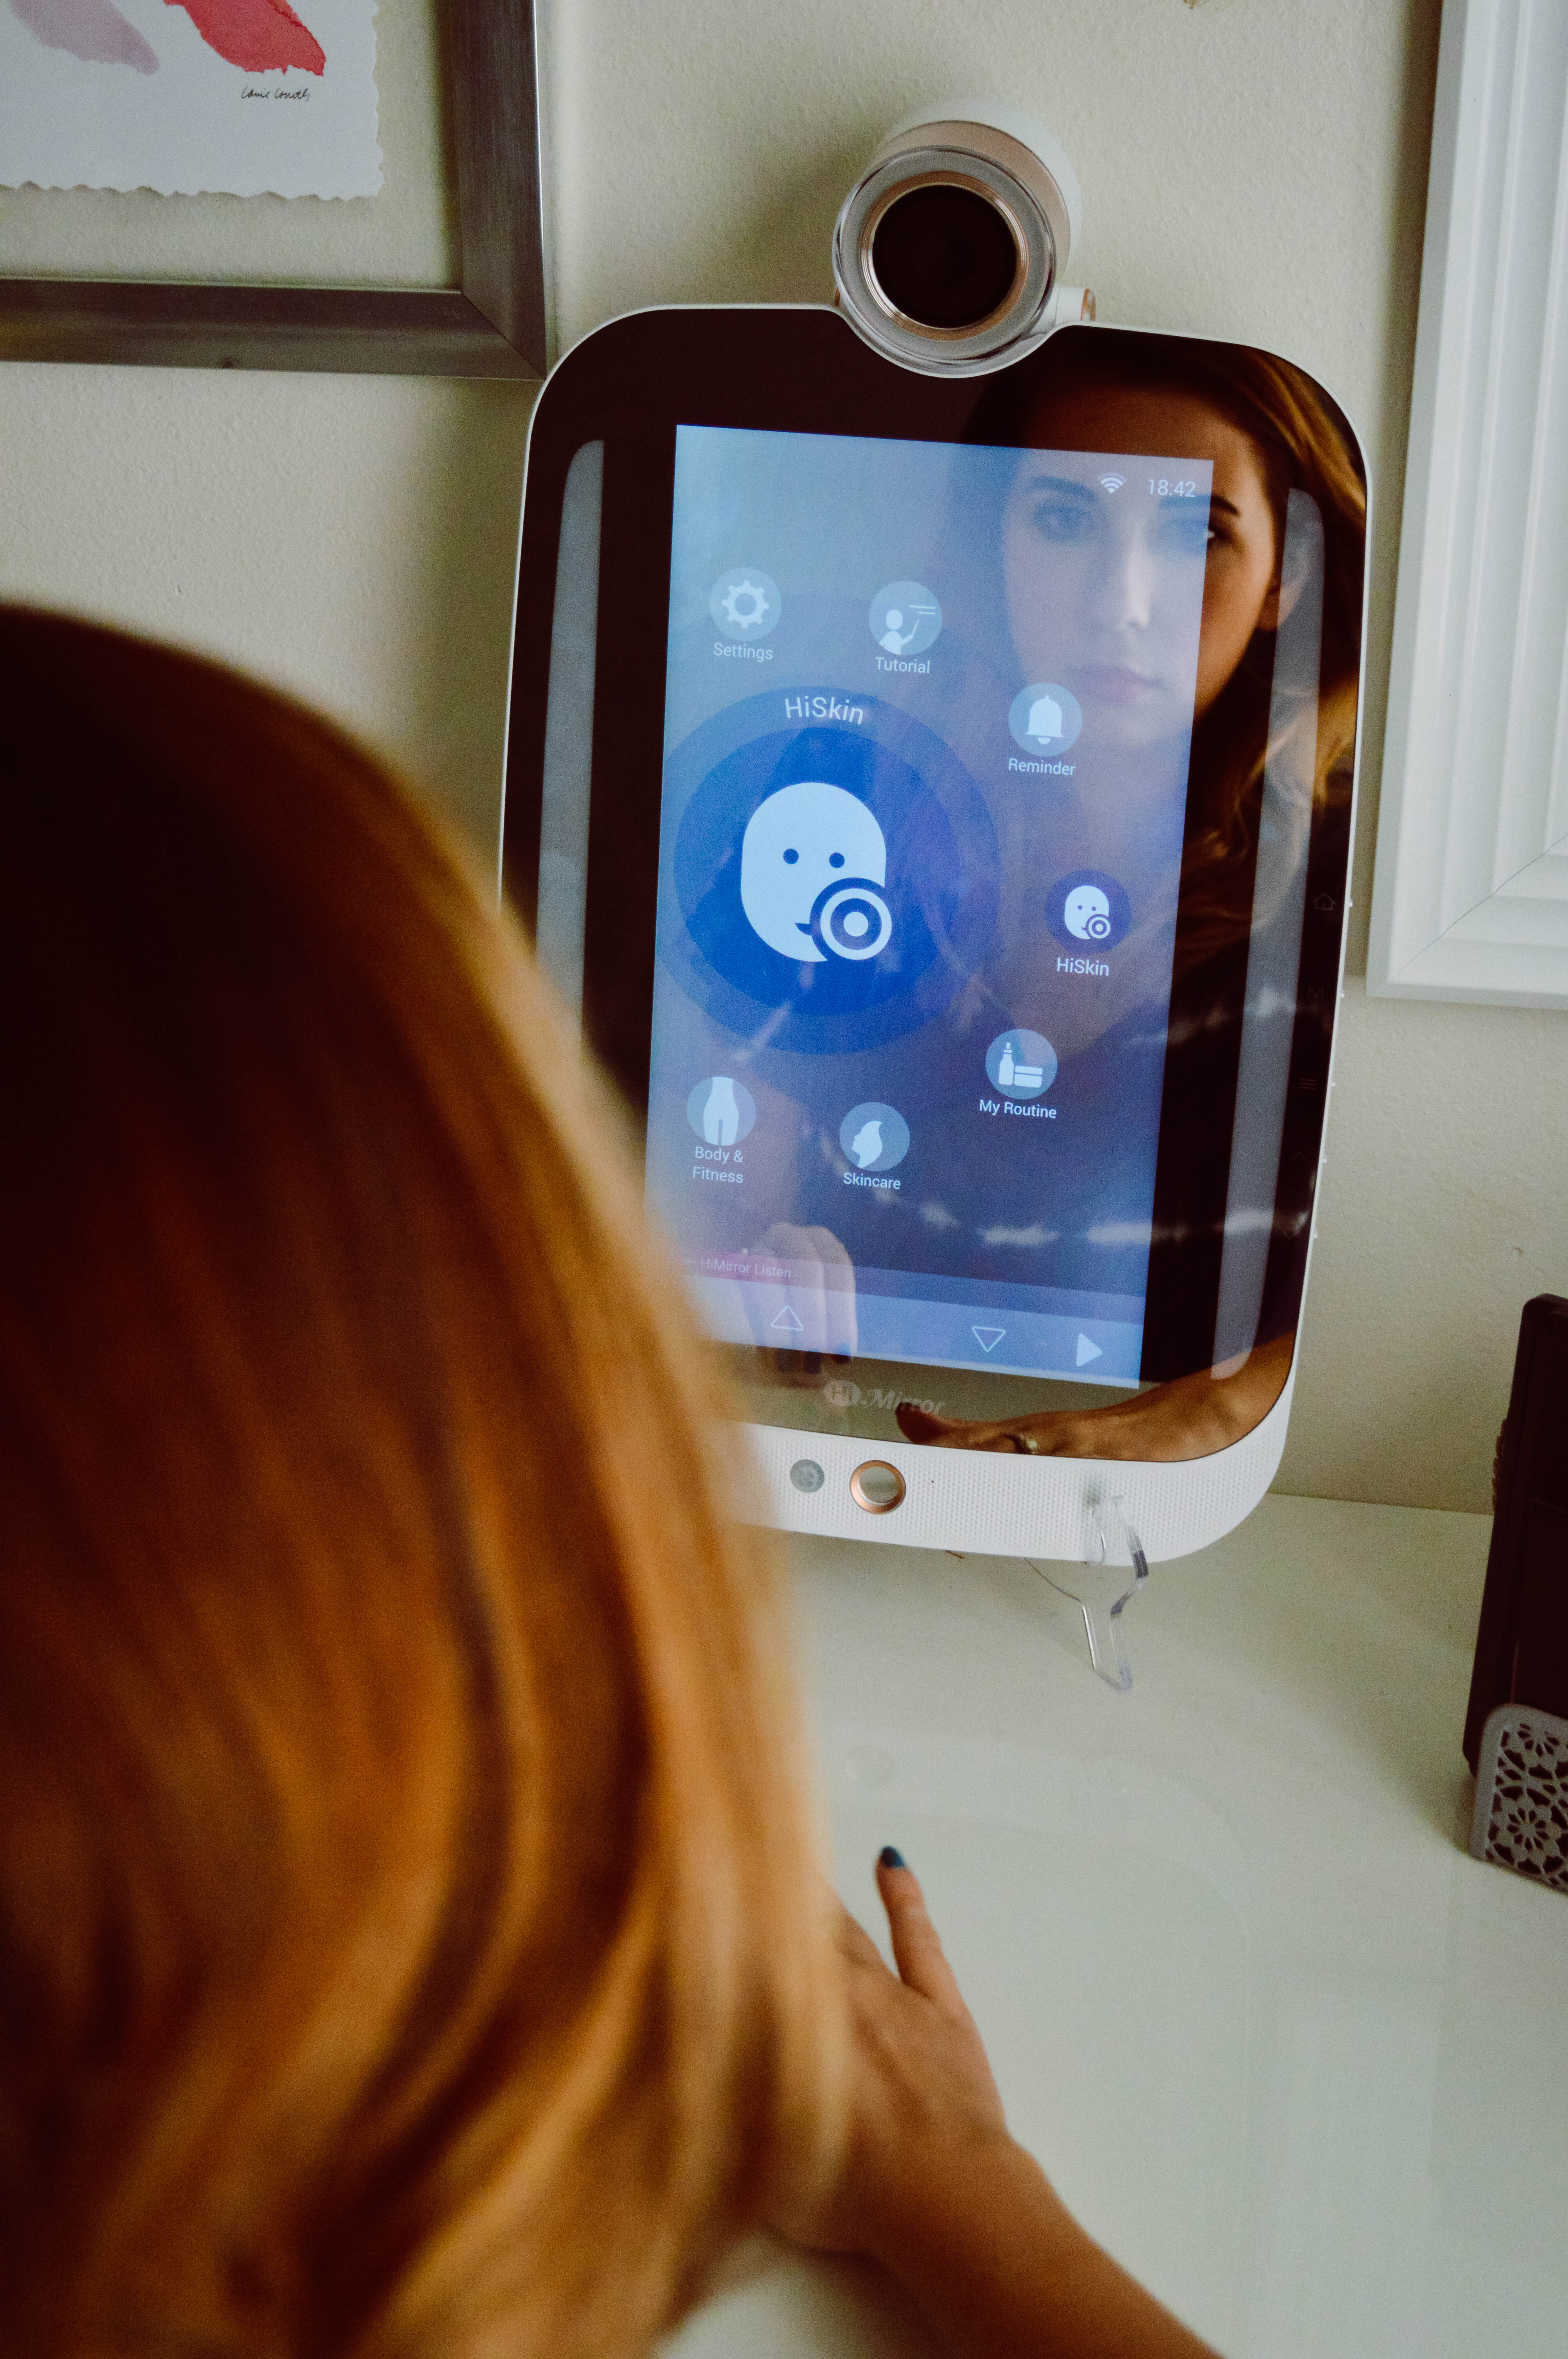 HiMirror Plus - the perfect addition to your makeup vanity? Find out if it's worth the hype! // Hey There, Chelsie